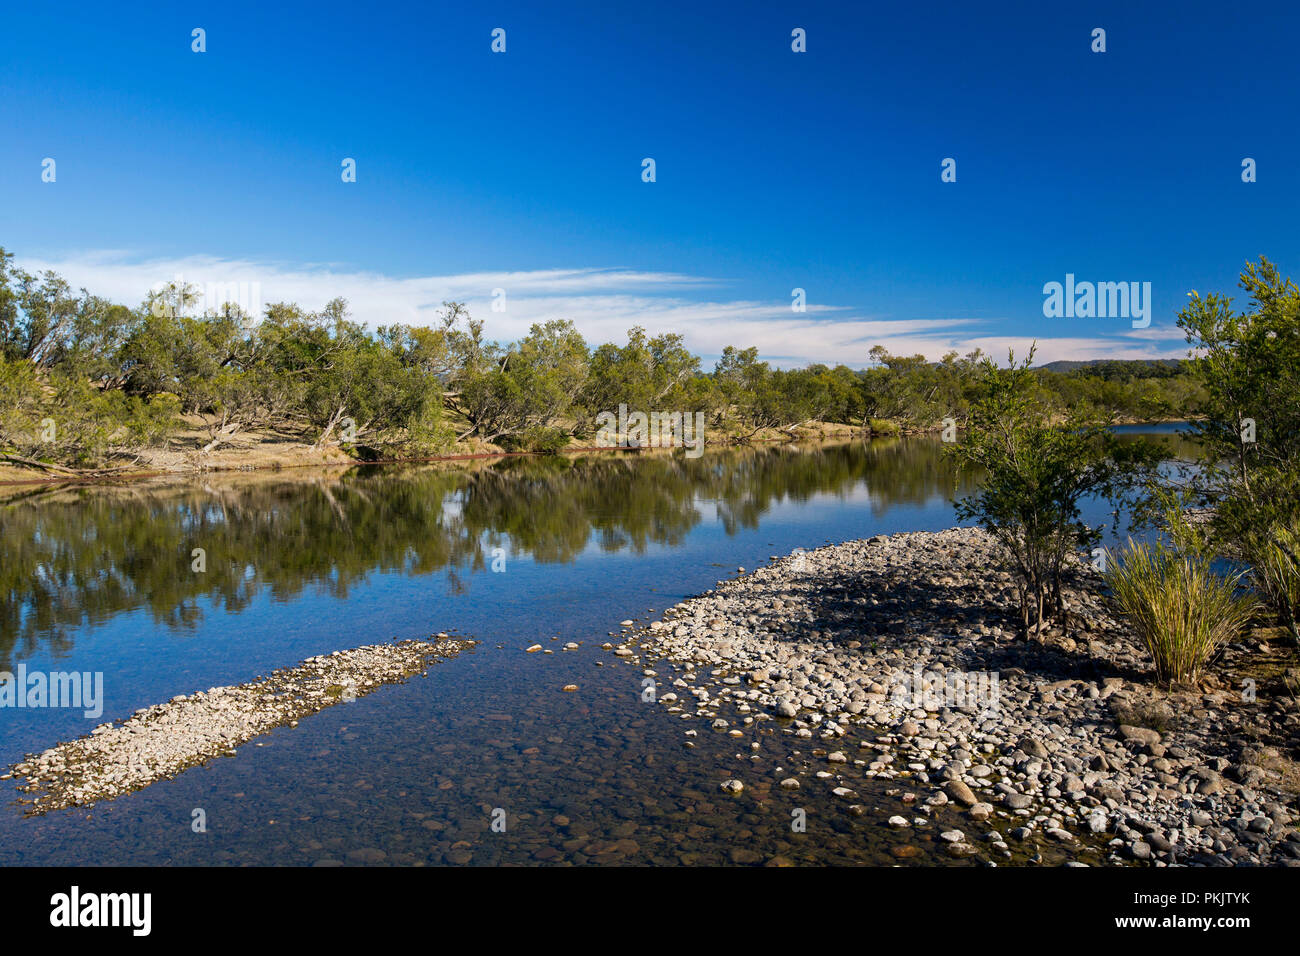 Calm blue waters of Clarence River slicing through forested landscape under blue sky in northern NSW Australia - Stock Image